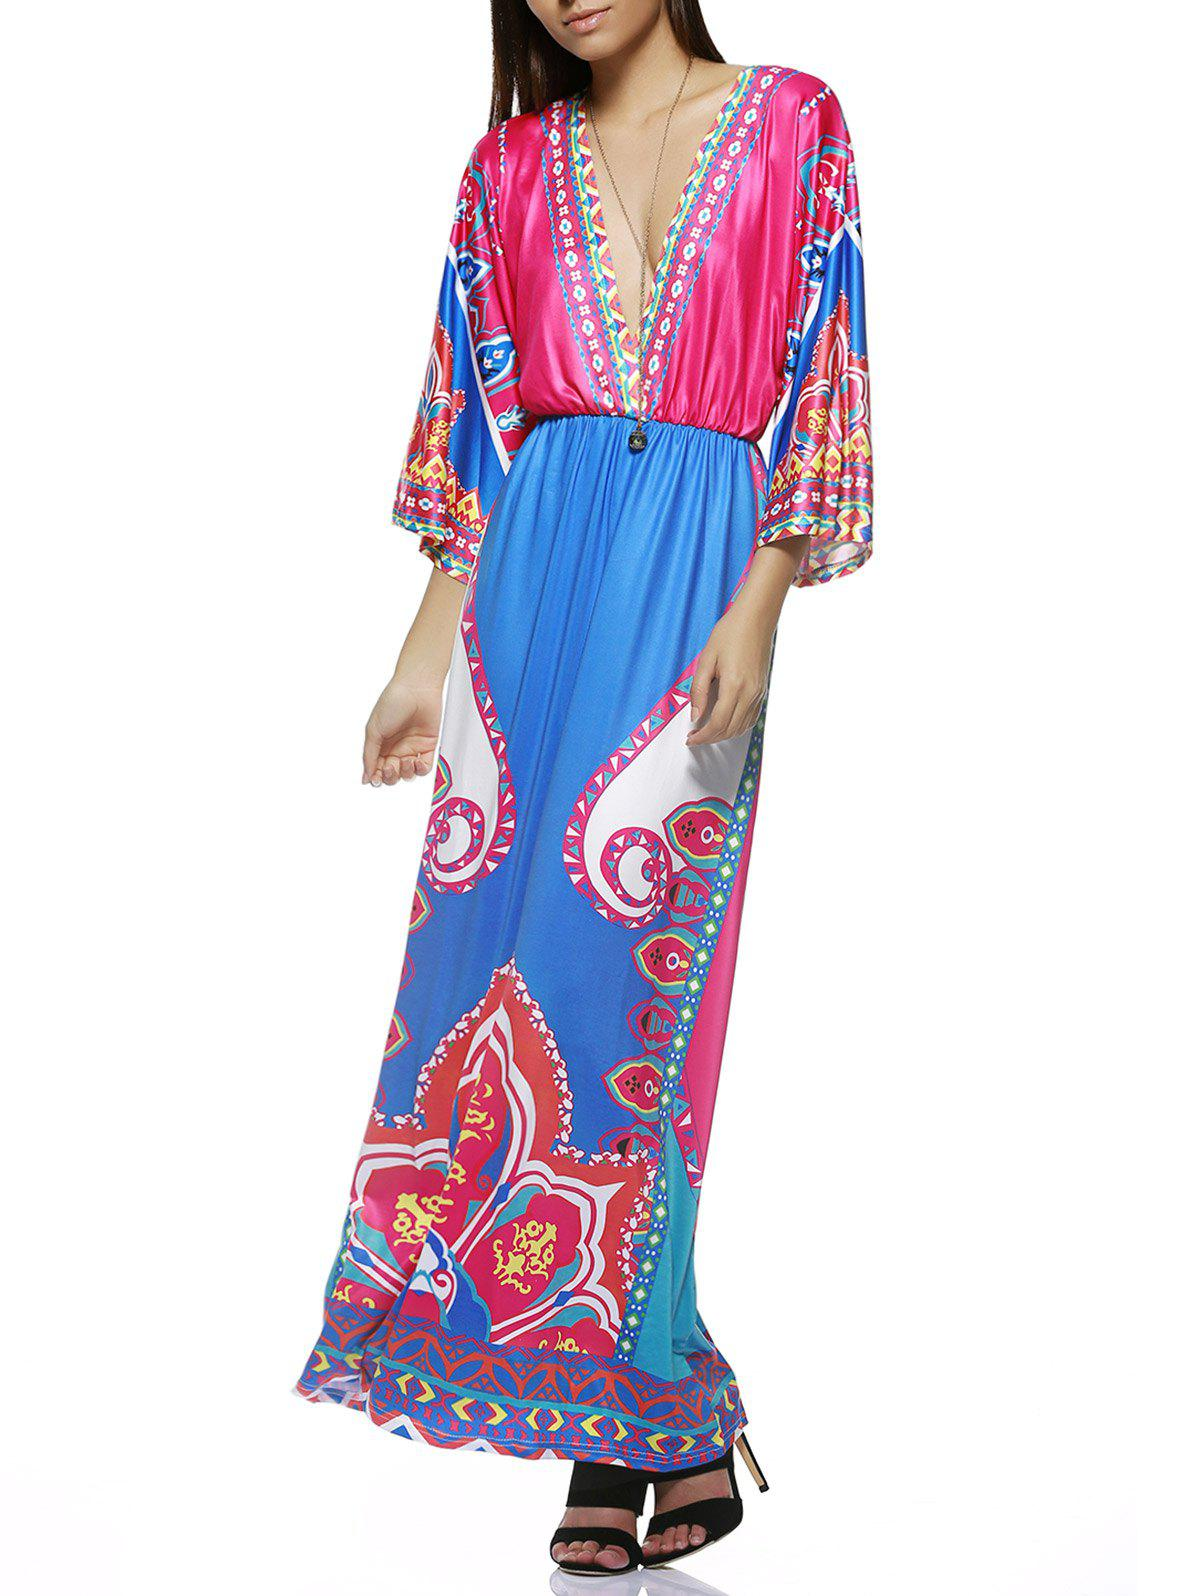 Bohemian Plunge Neck Tribal Print Colorful Maxi Dress - COLORMIX ONE SIZE